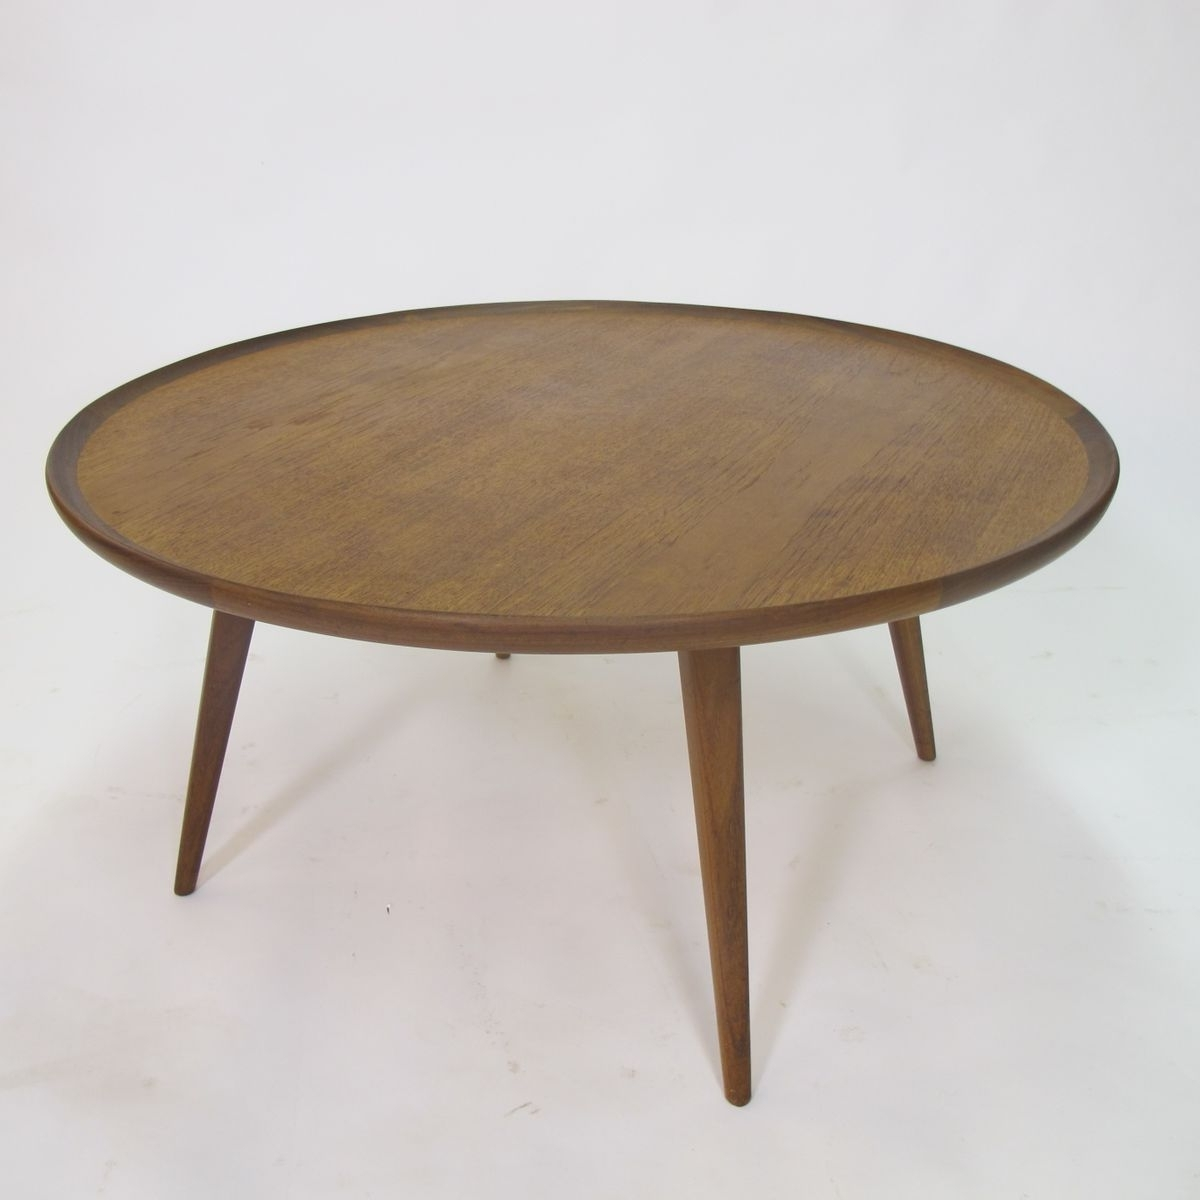 Favorite Round Teak Coffee Tables Pertaining To Mid Century Round Teak Coffee Table, 1950s For Sale At Pamono (View 10 of 20)